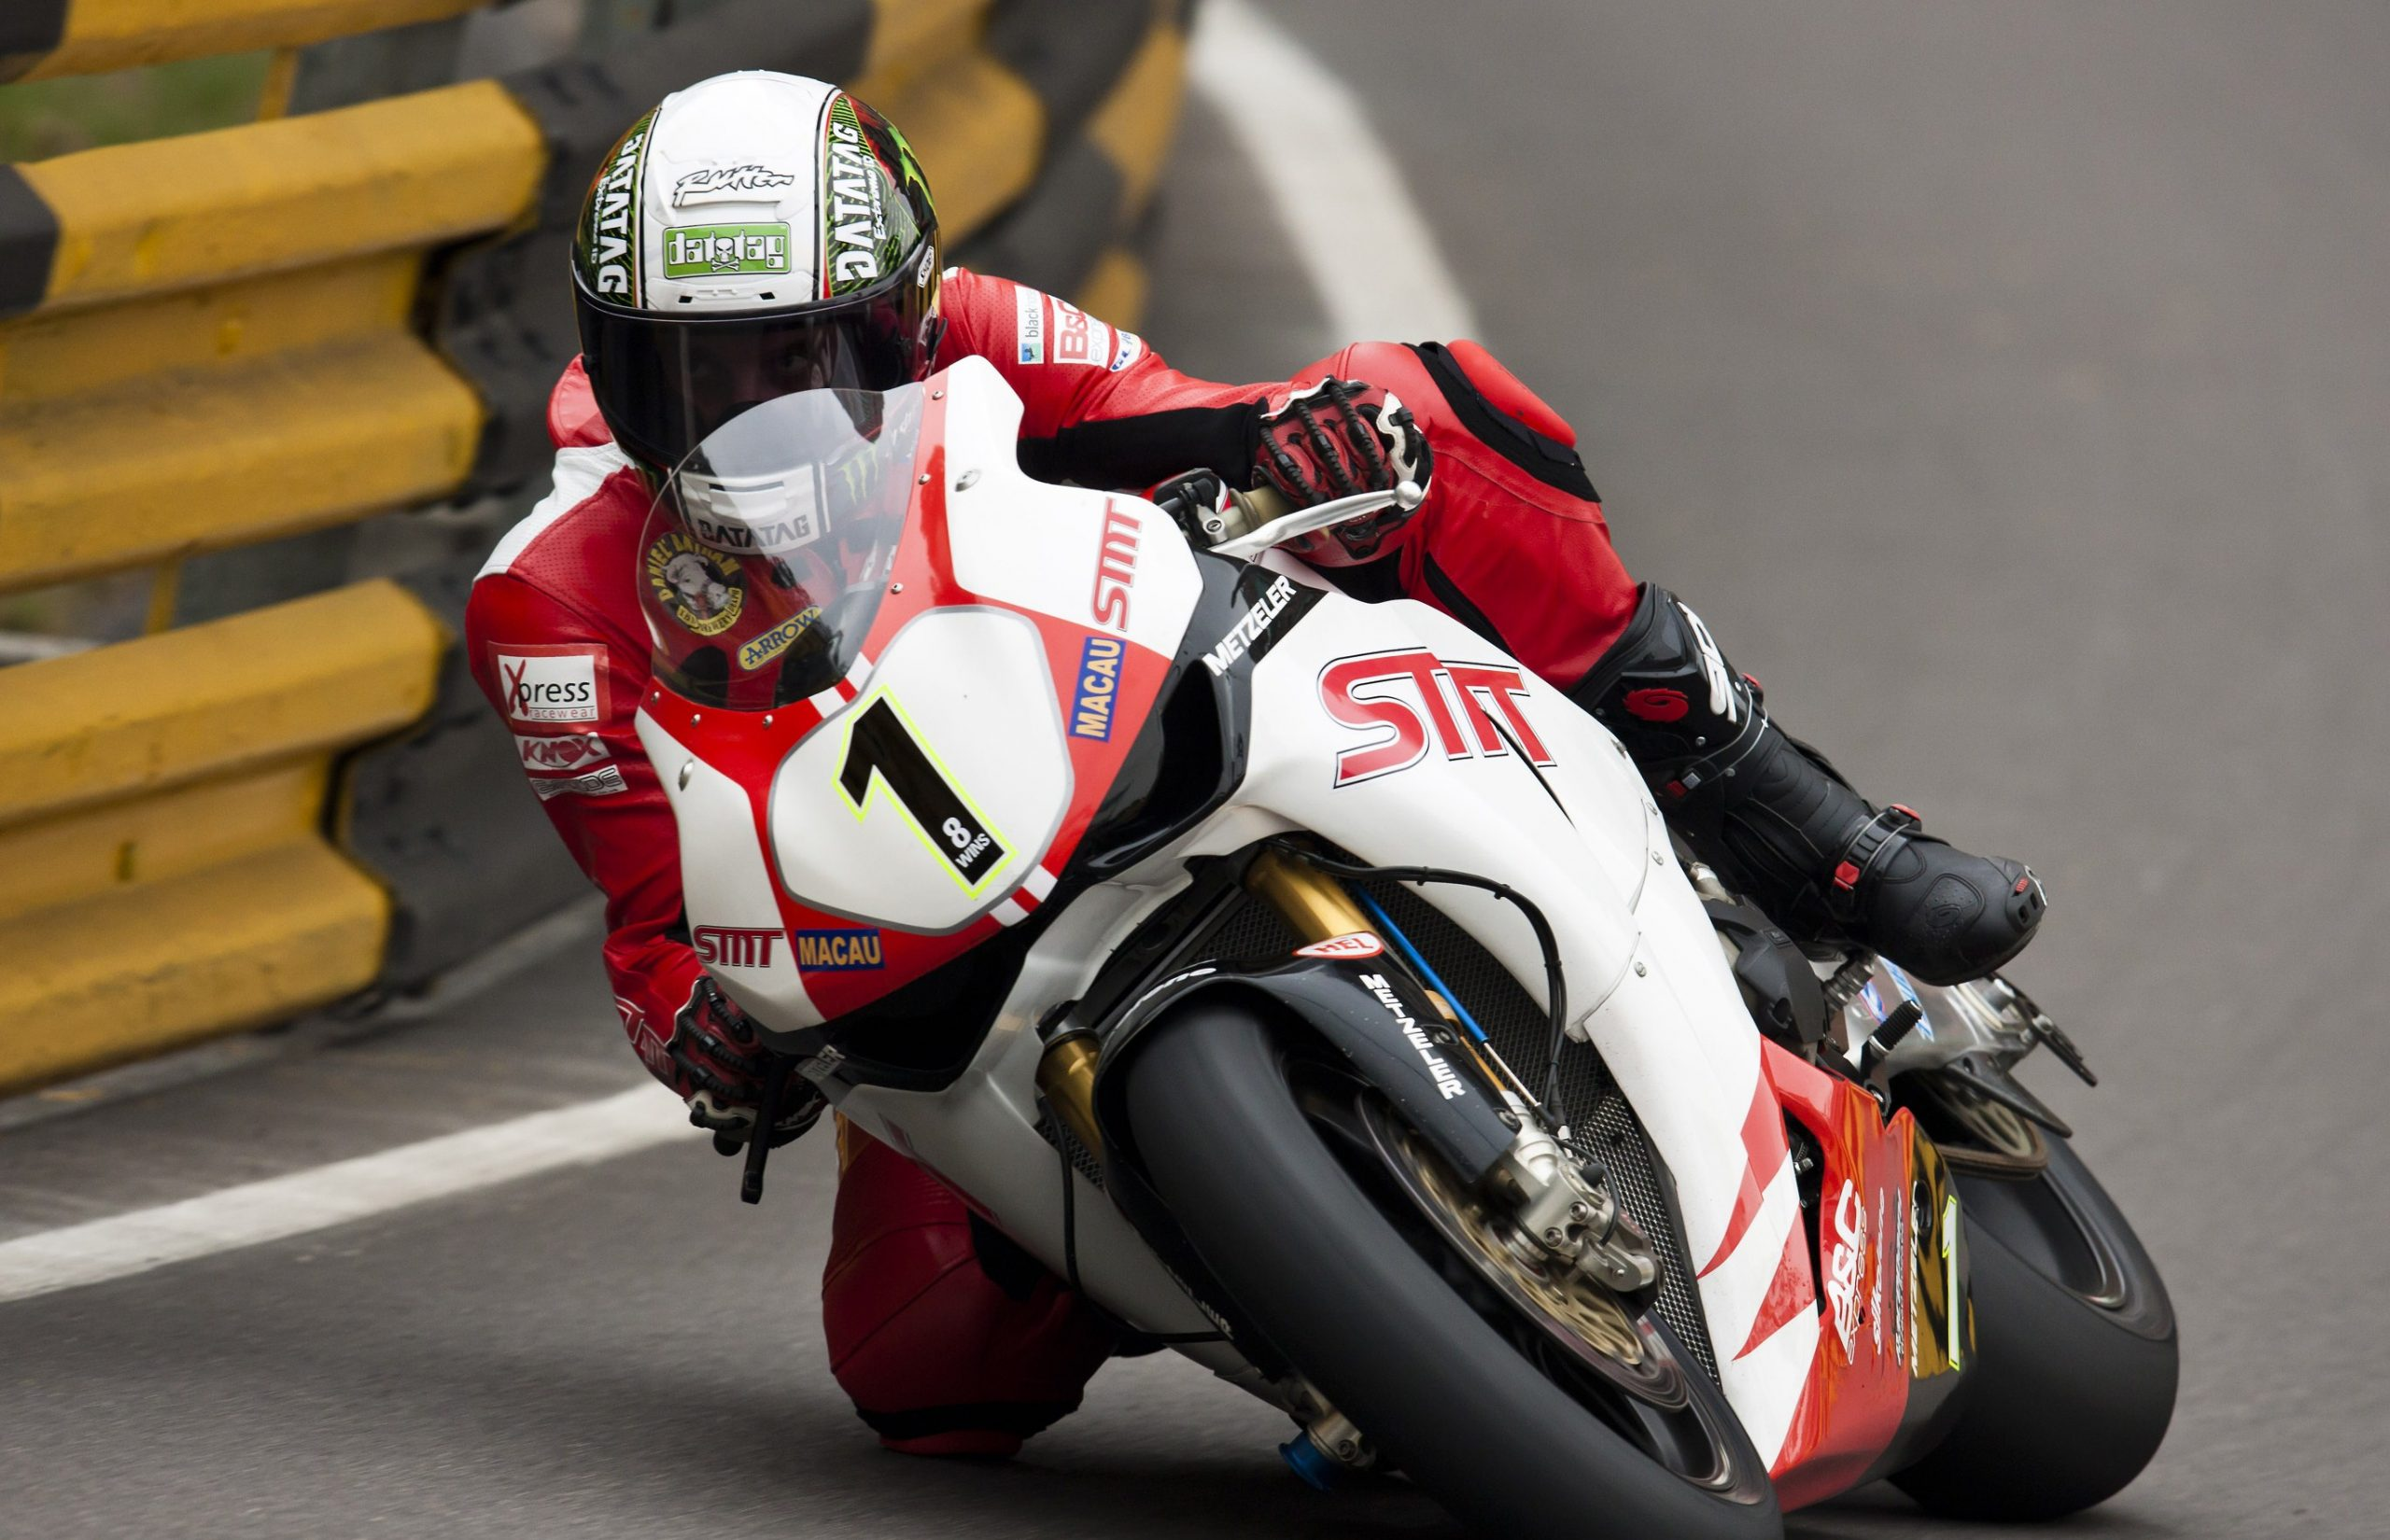 Michael Rutter - Macau 2013 image by Stephen Davison - Pacemaker Press International